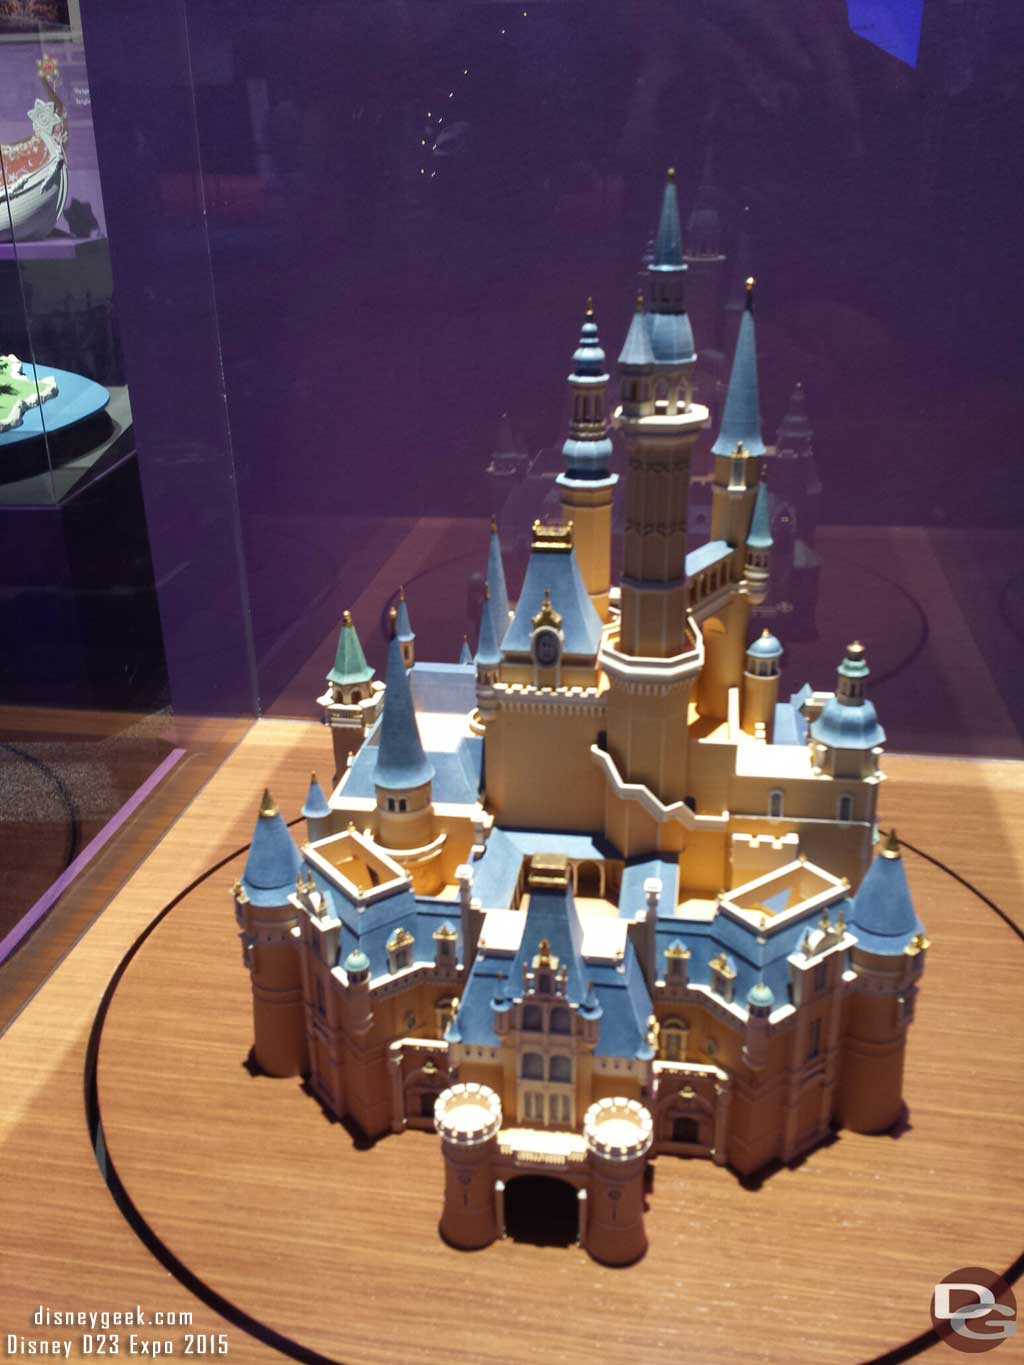 #ShanghaiDisneyland Castle Model #D23Expo